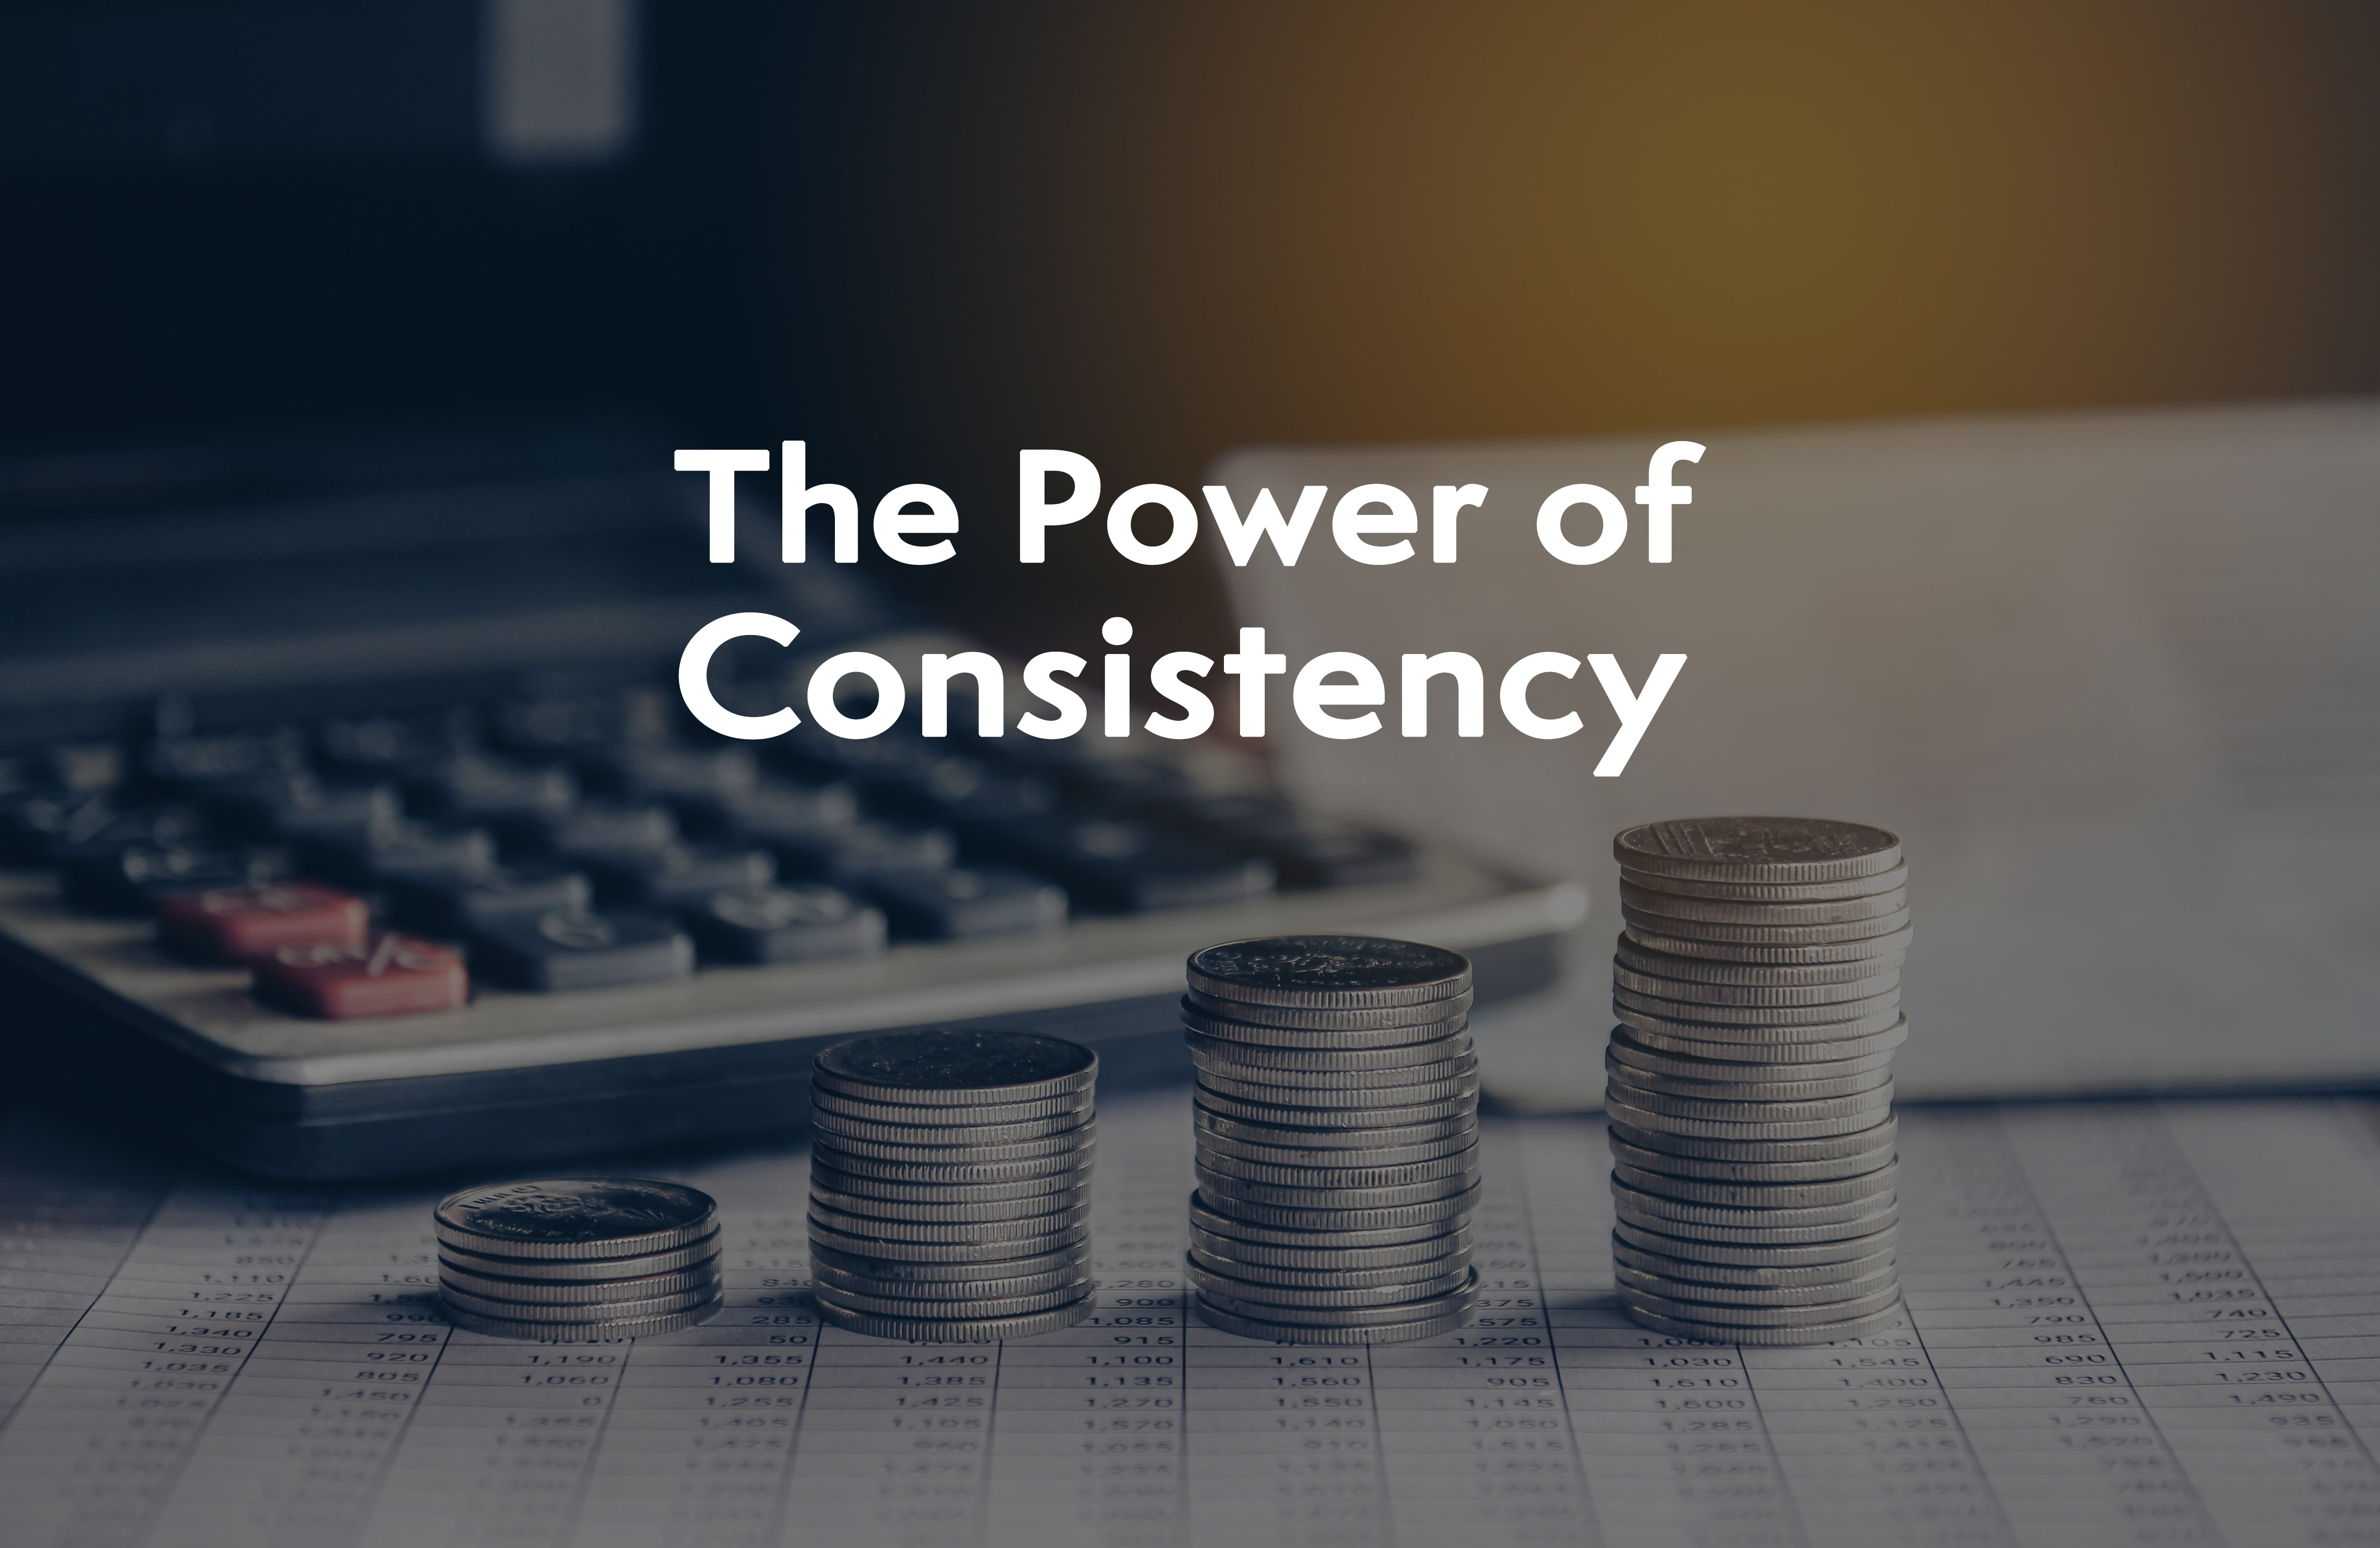 The Power of Consistency! The more you Spend, the more you Save - Jar App